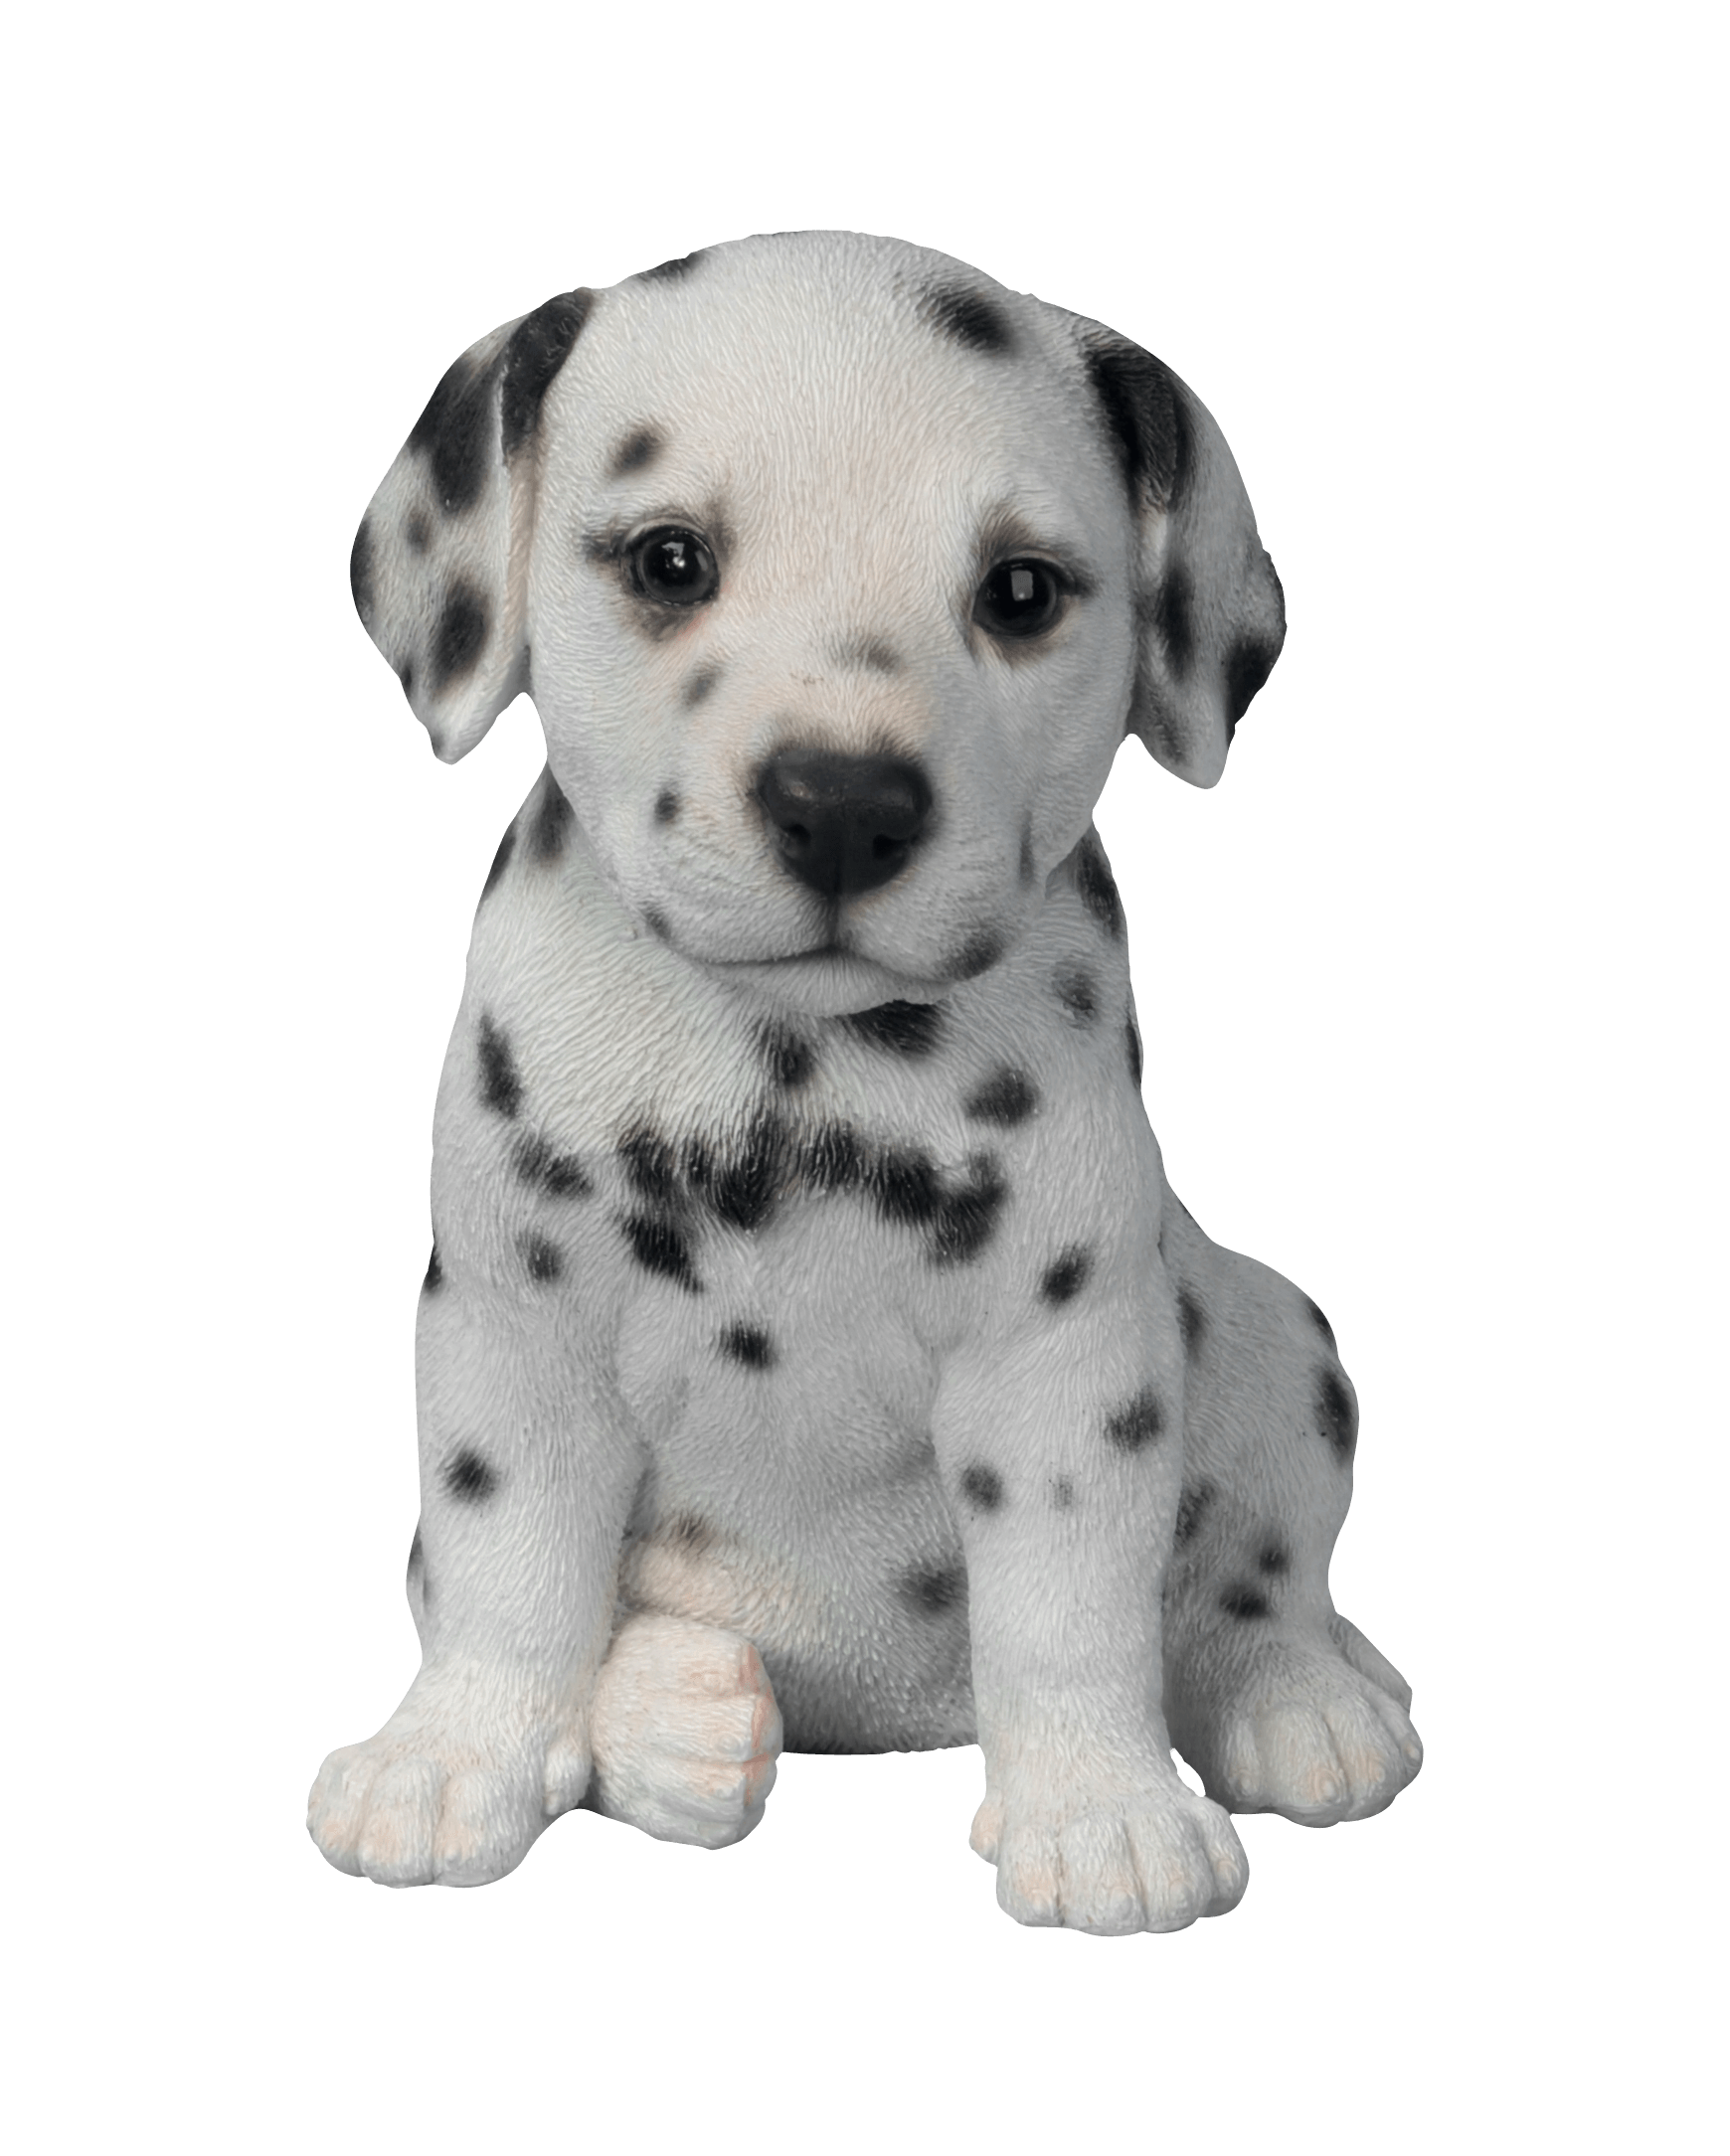 White dog png. Cute puppies transparent stickpng